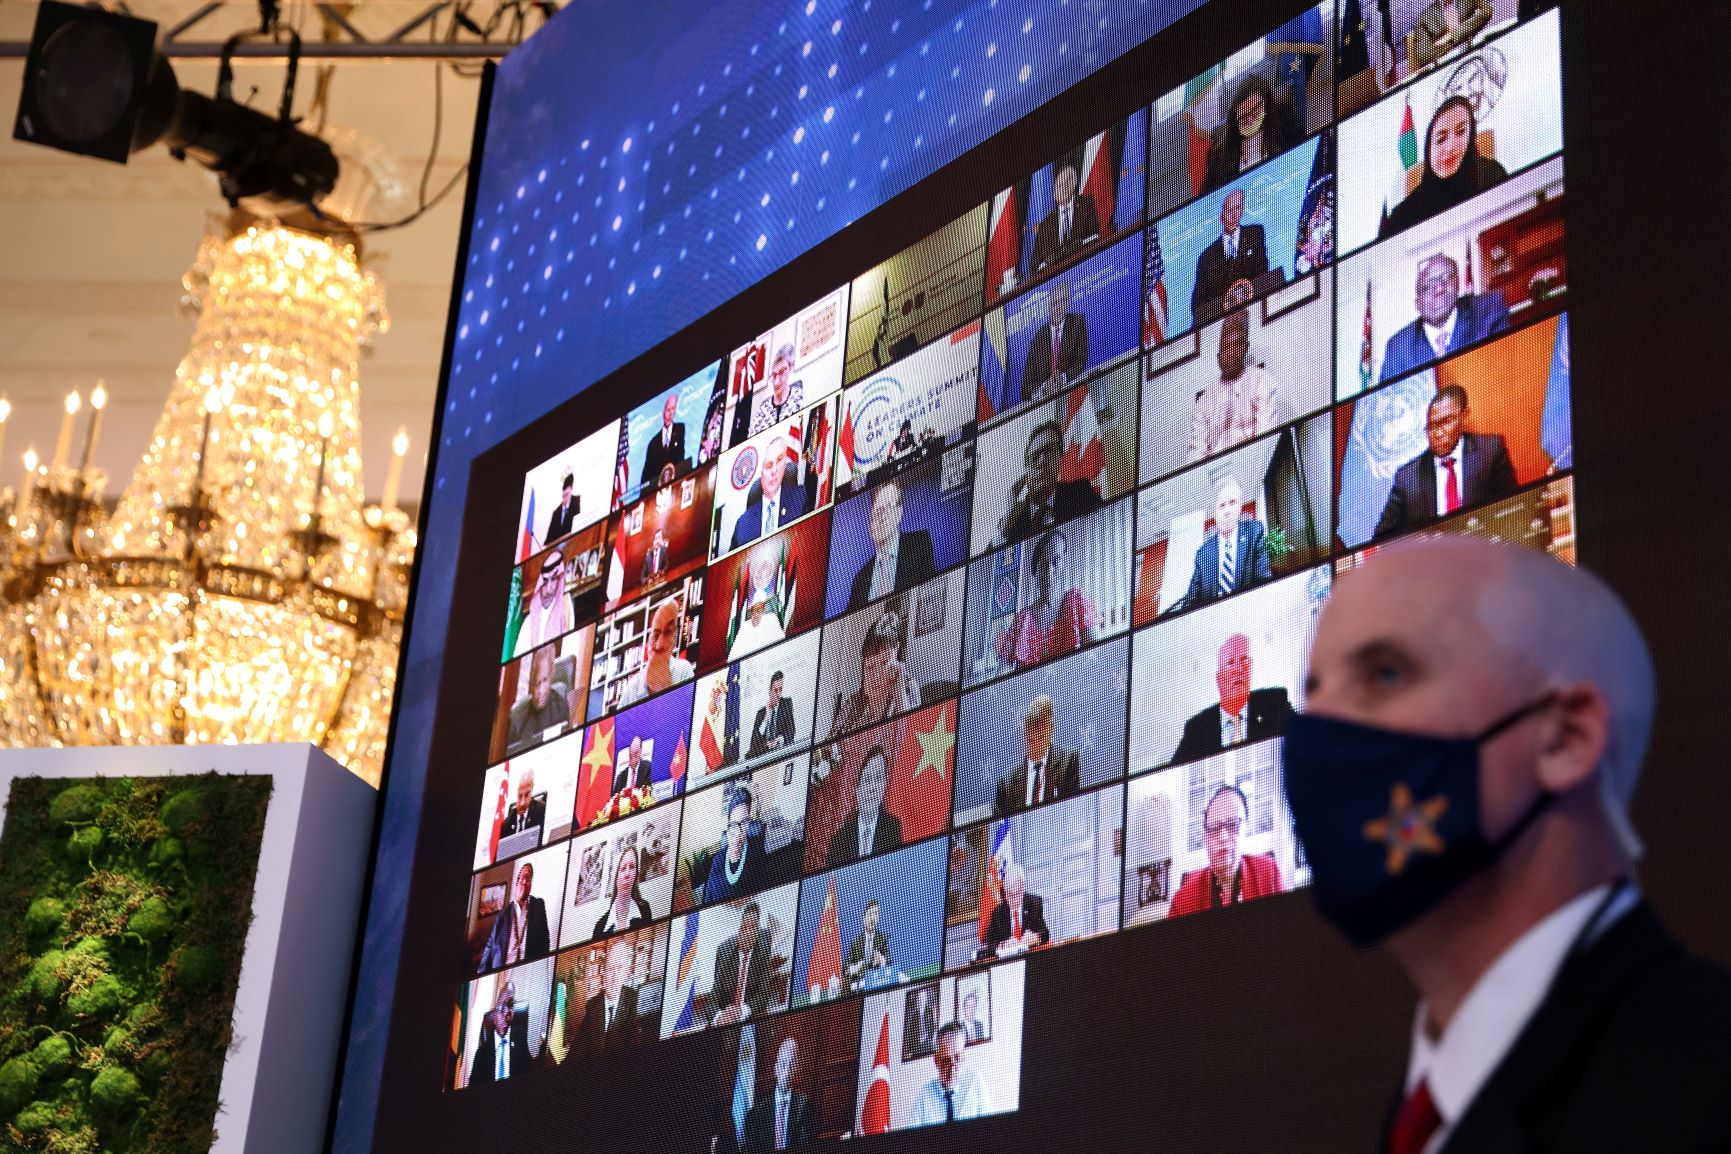 World leaders appear on a video screen during a virtual Climate Summit with world leaders in the East Room at the White House in Washington, DC, on April 23, 2021. REUTERS/Tom Brenner